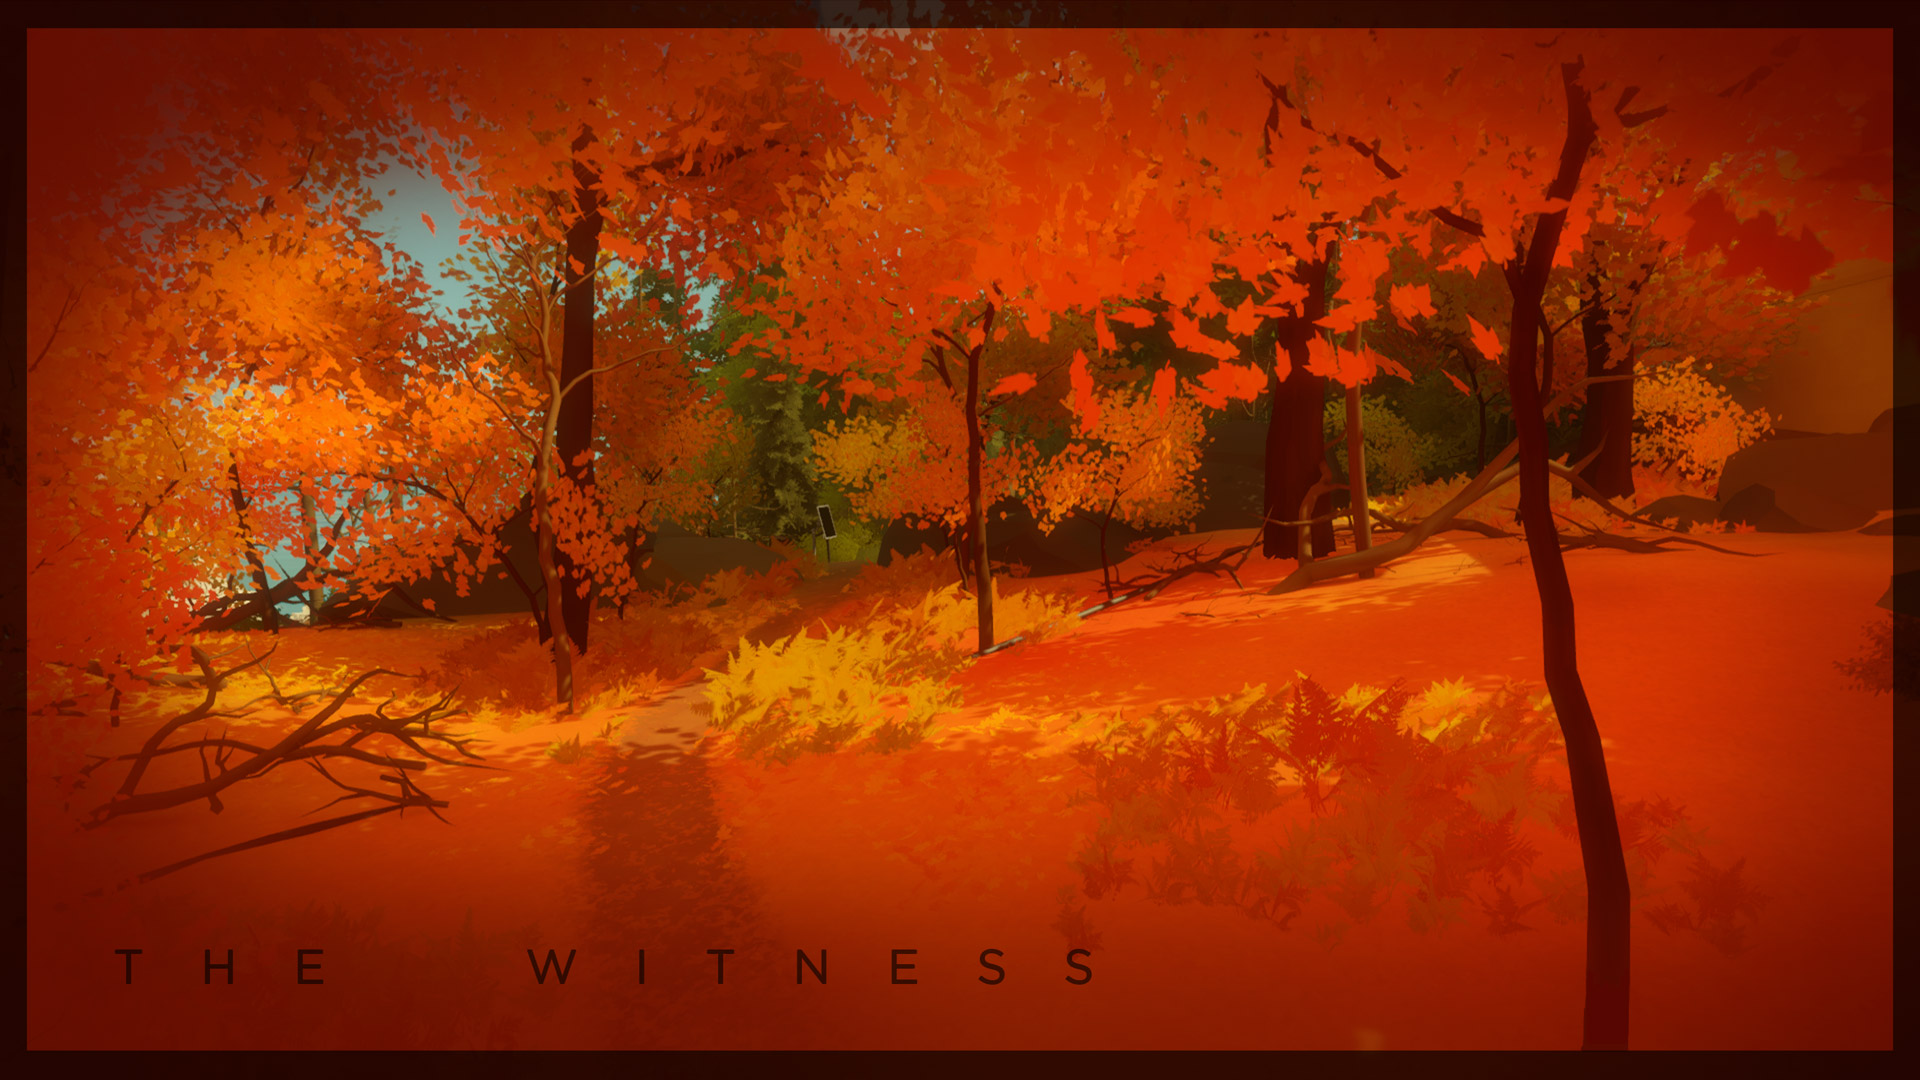 Free The Witness Wallpaper in 1920x1080